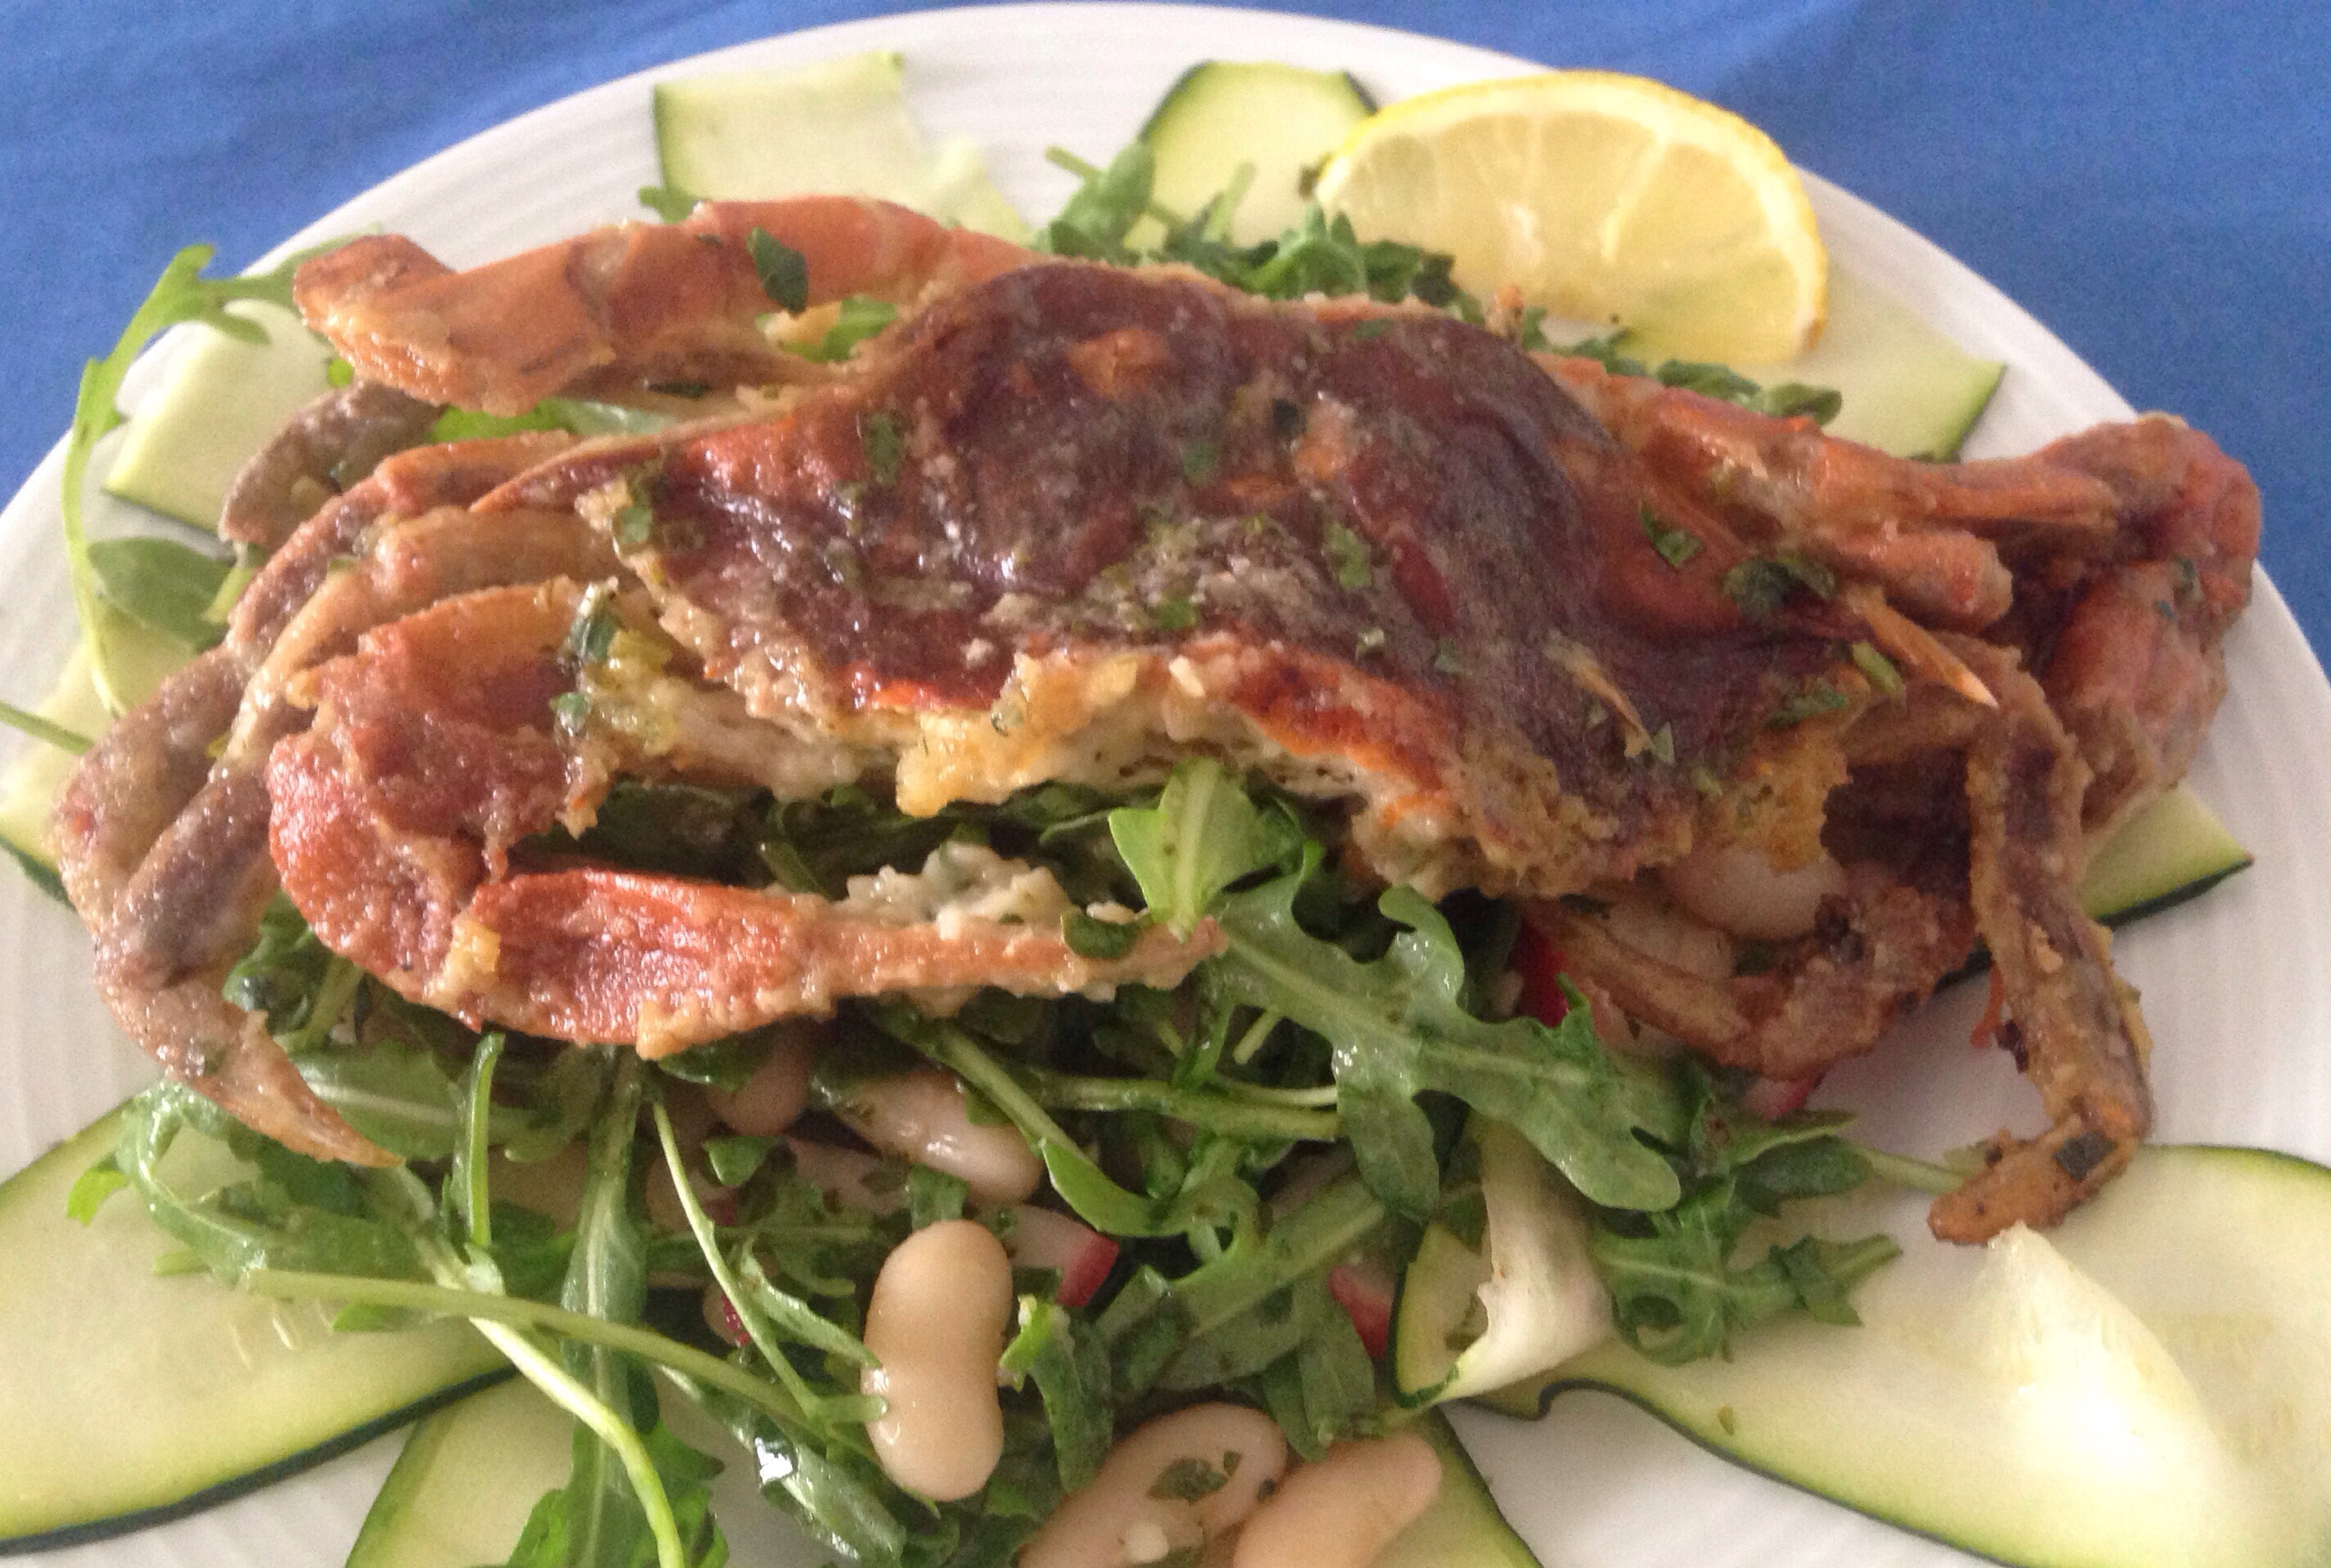 Soft Shell Crab on Arugula, White Bean and Zucchini Salad